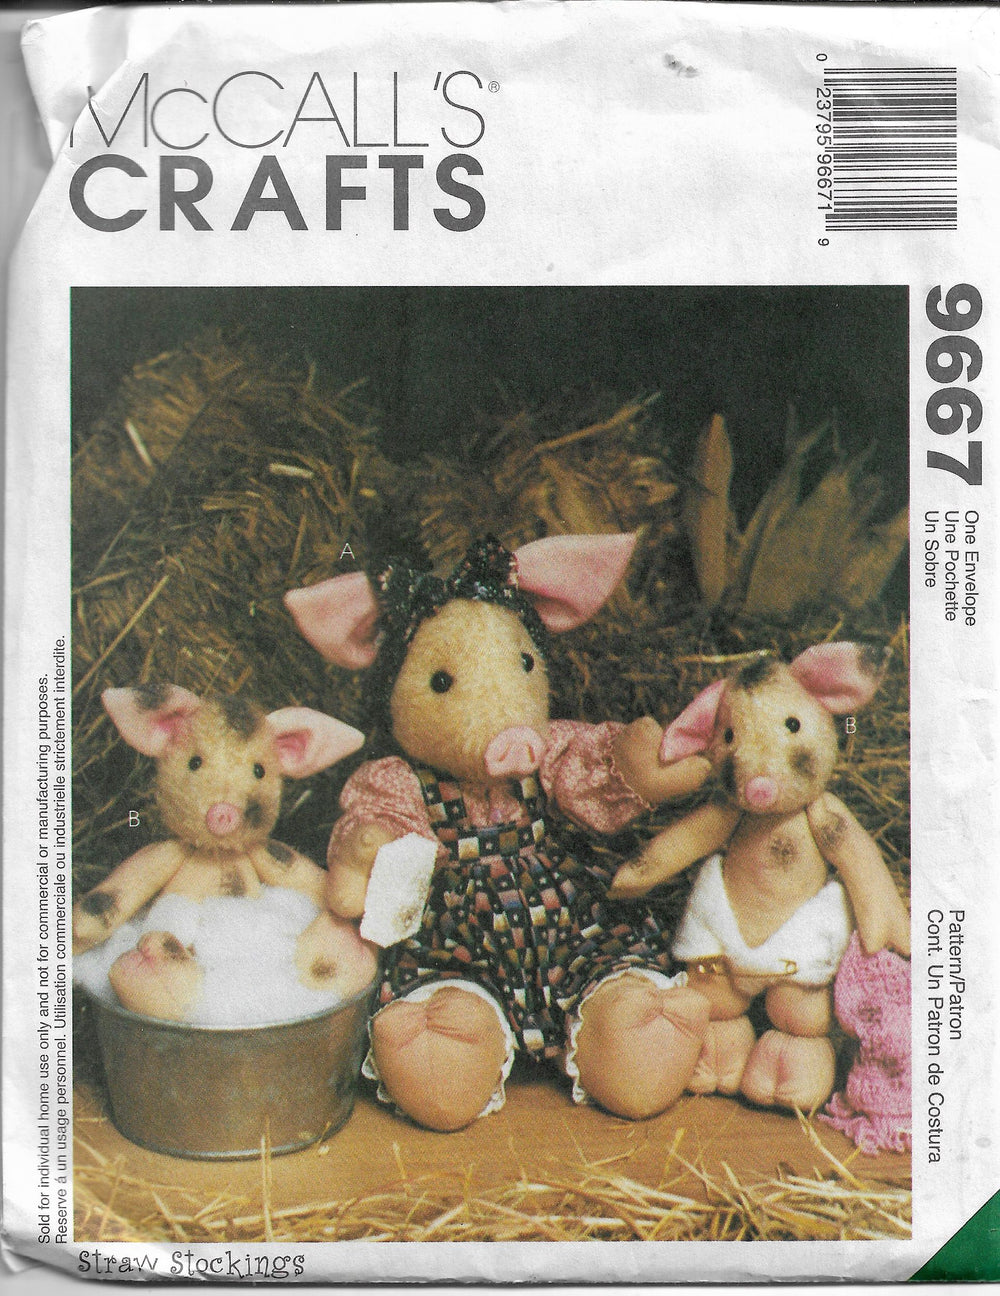 McCalls 9667 Crafts Sewing Pattern Stuffed Pigs Piglet Dolls - VintageStitching - Vintage Sewing Patterns